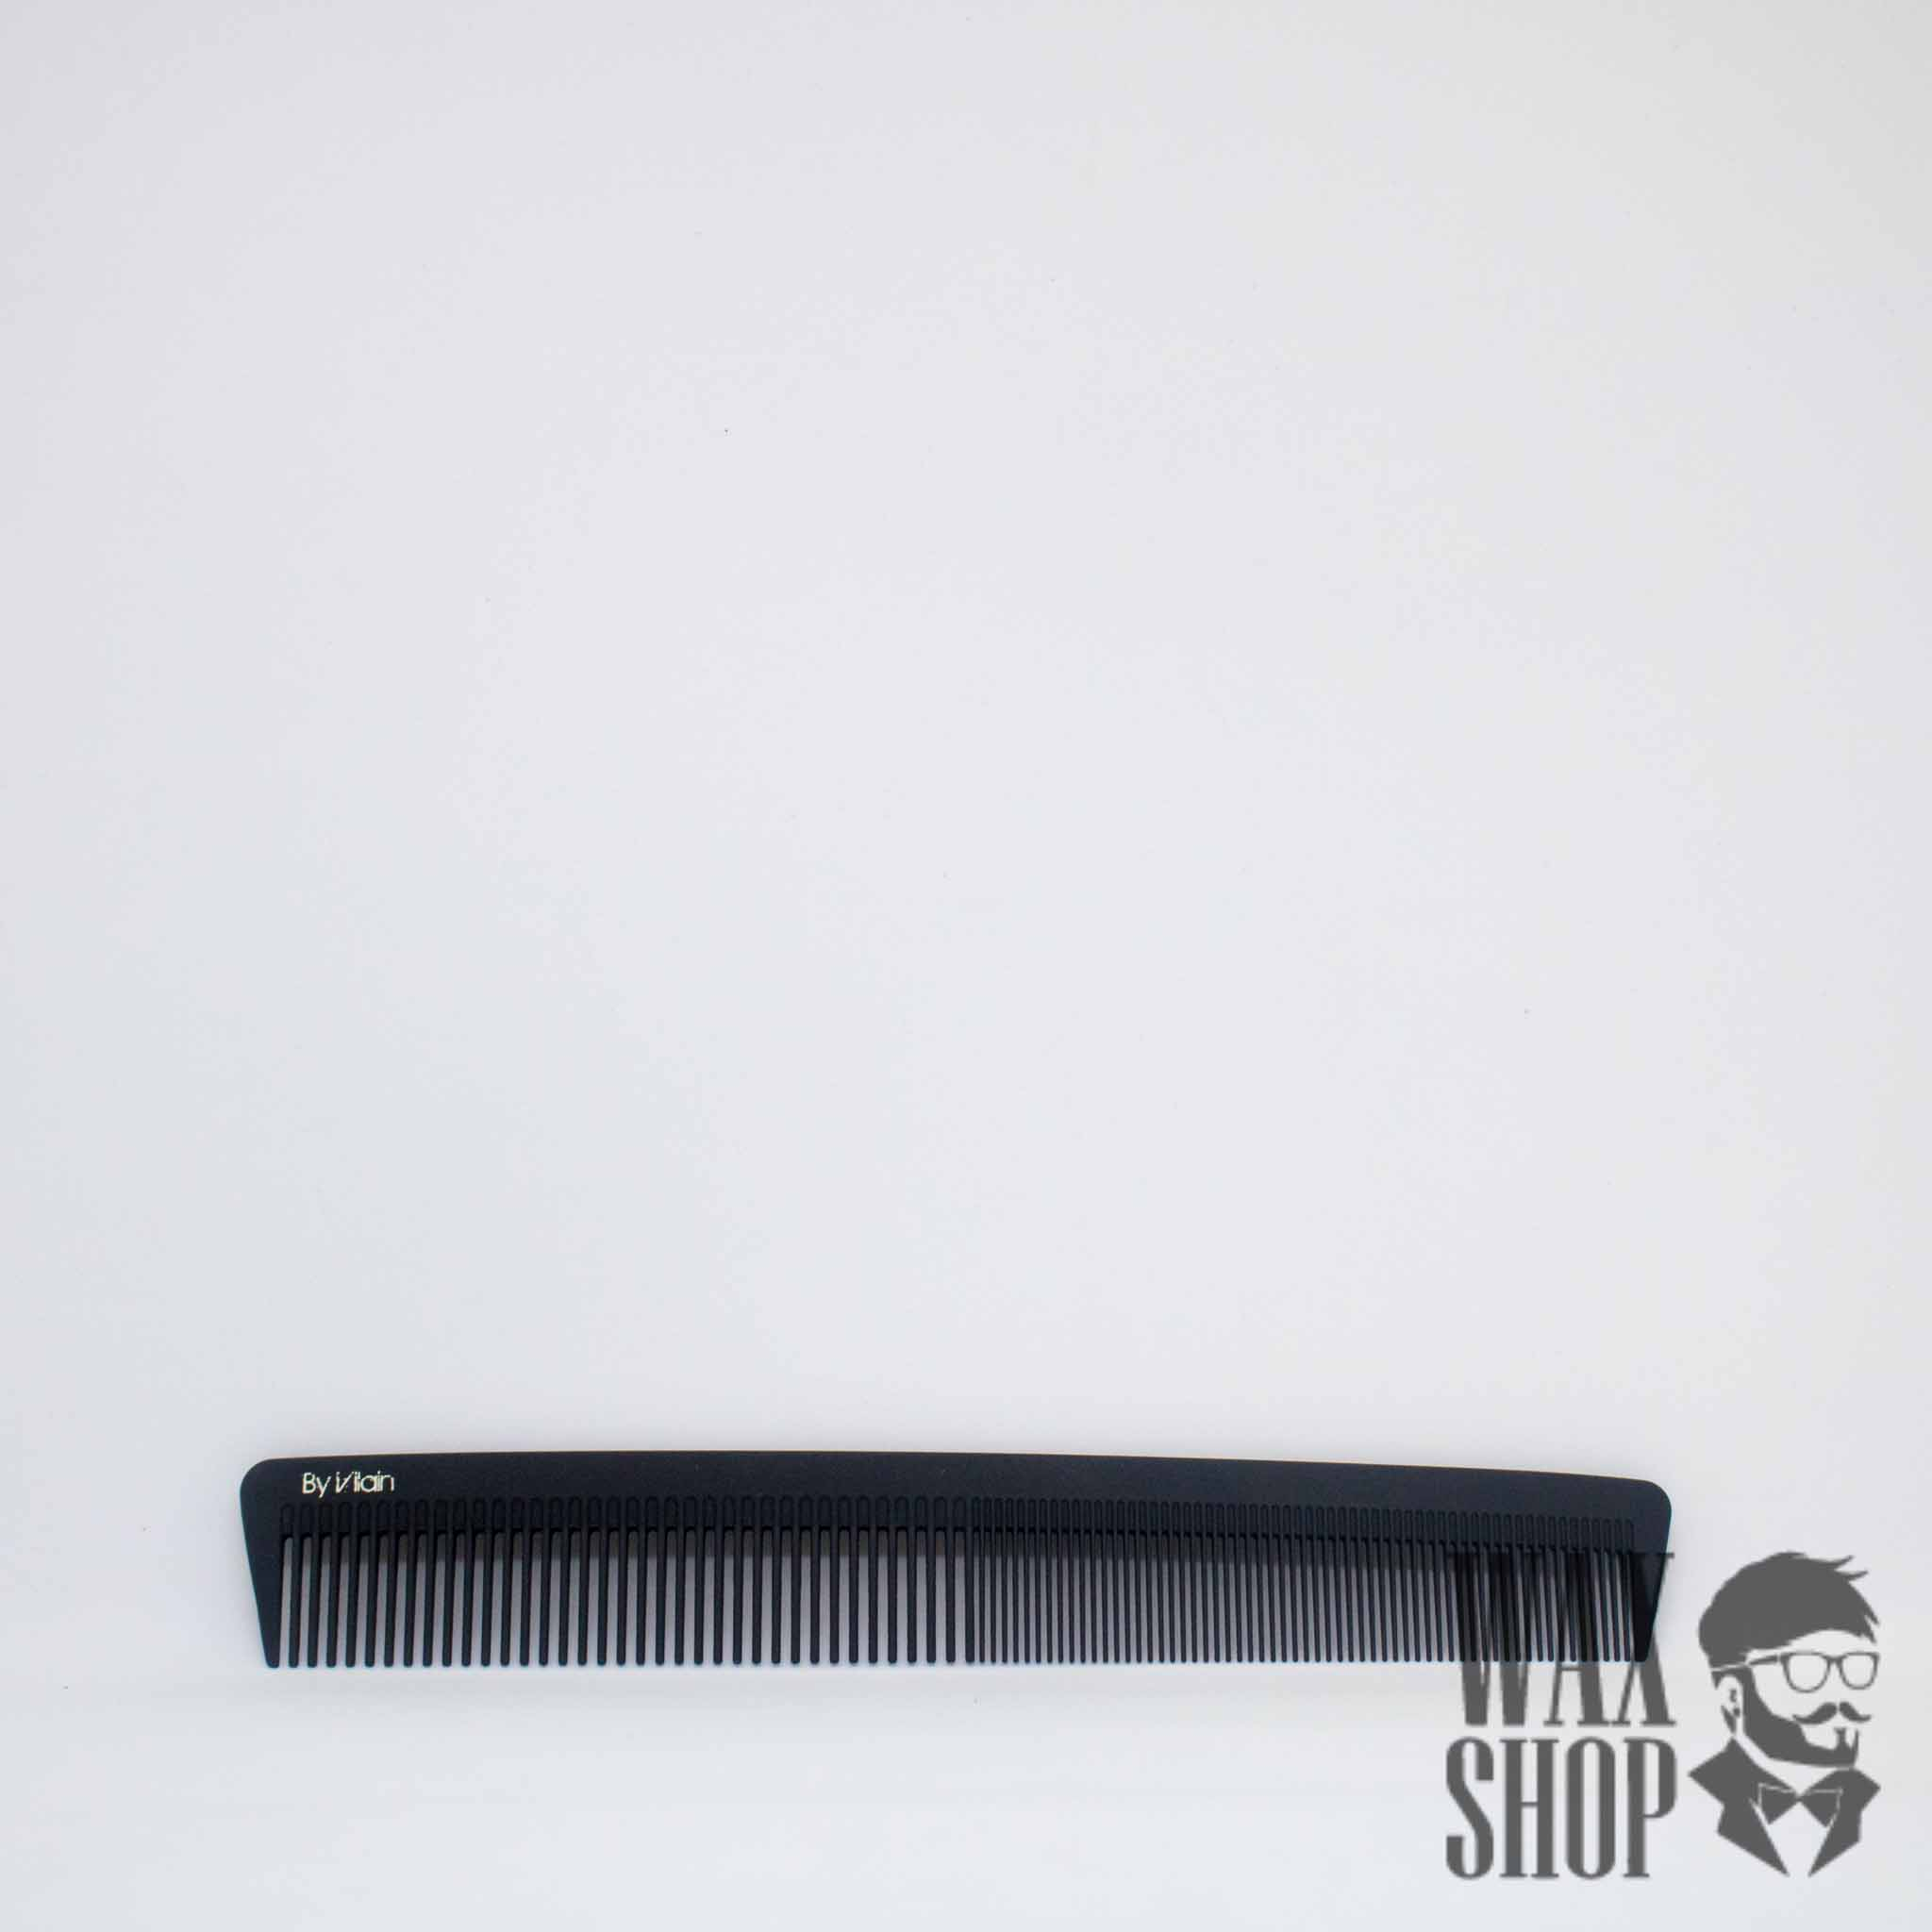 Comb - By Vilain